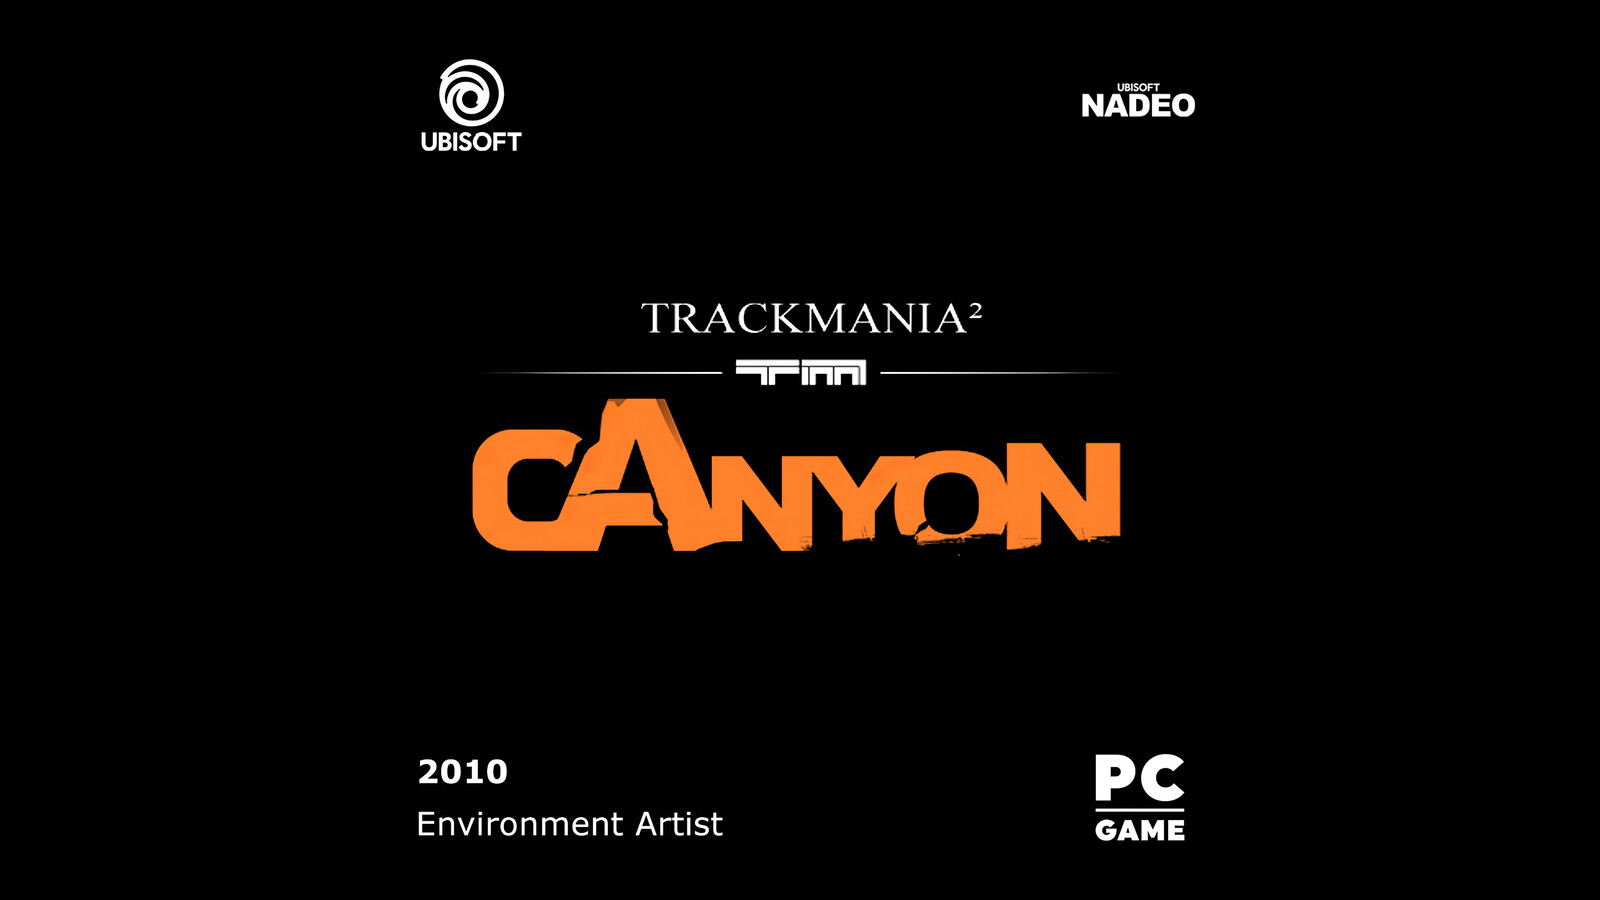 TrackMania²-Canyon_Logo